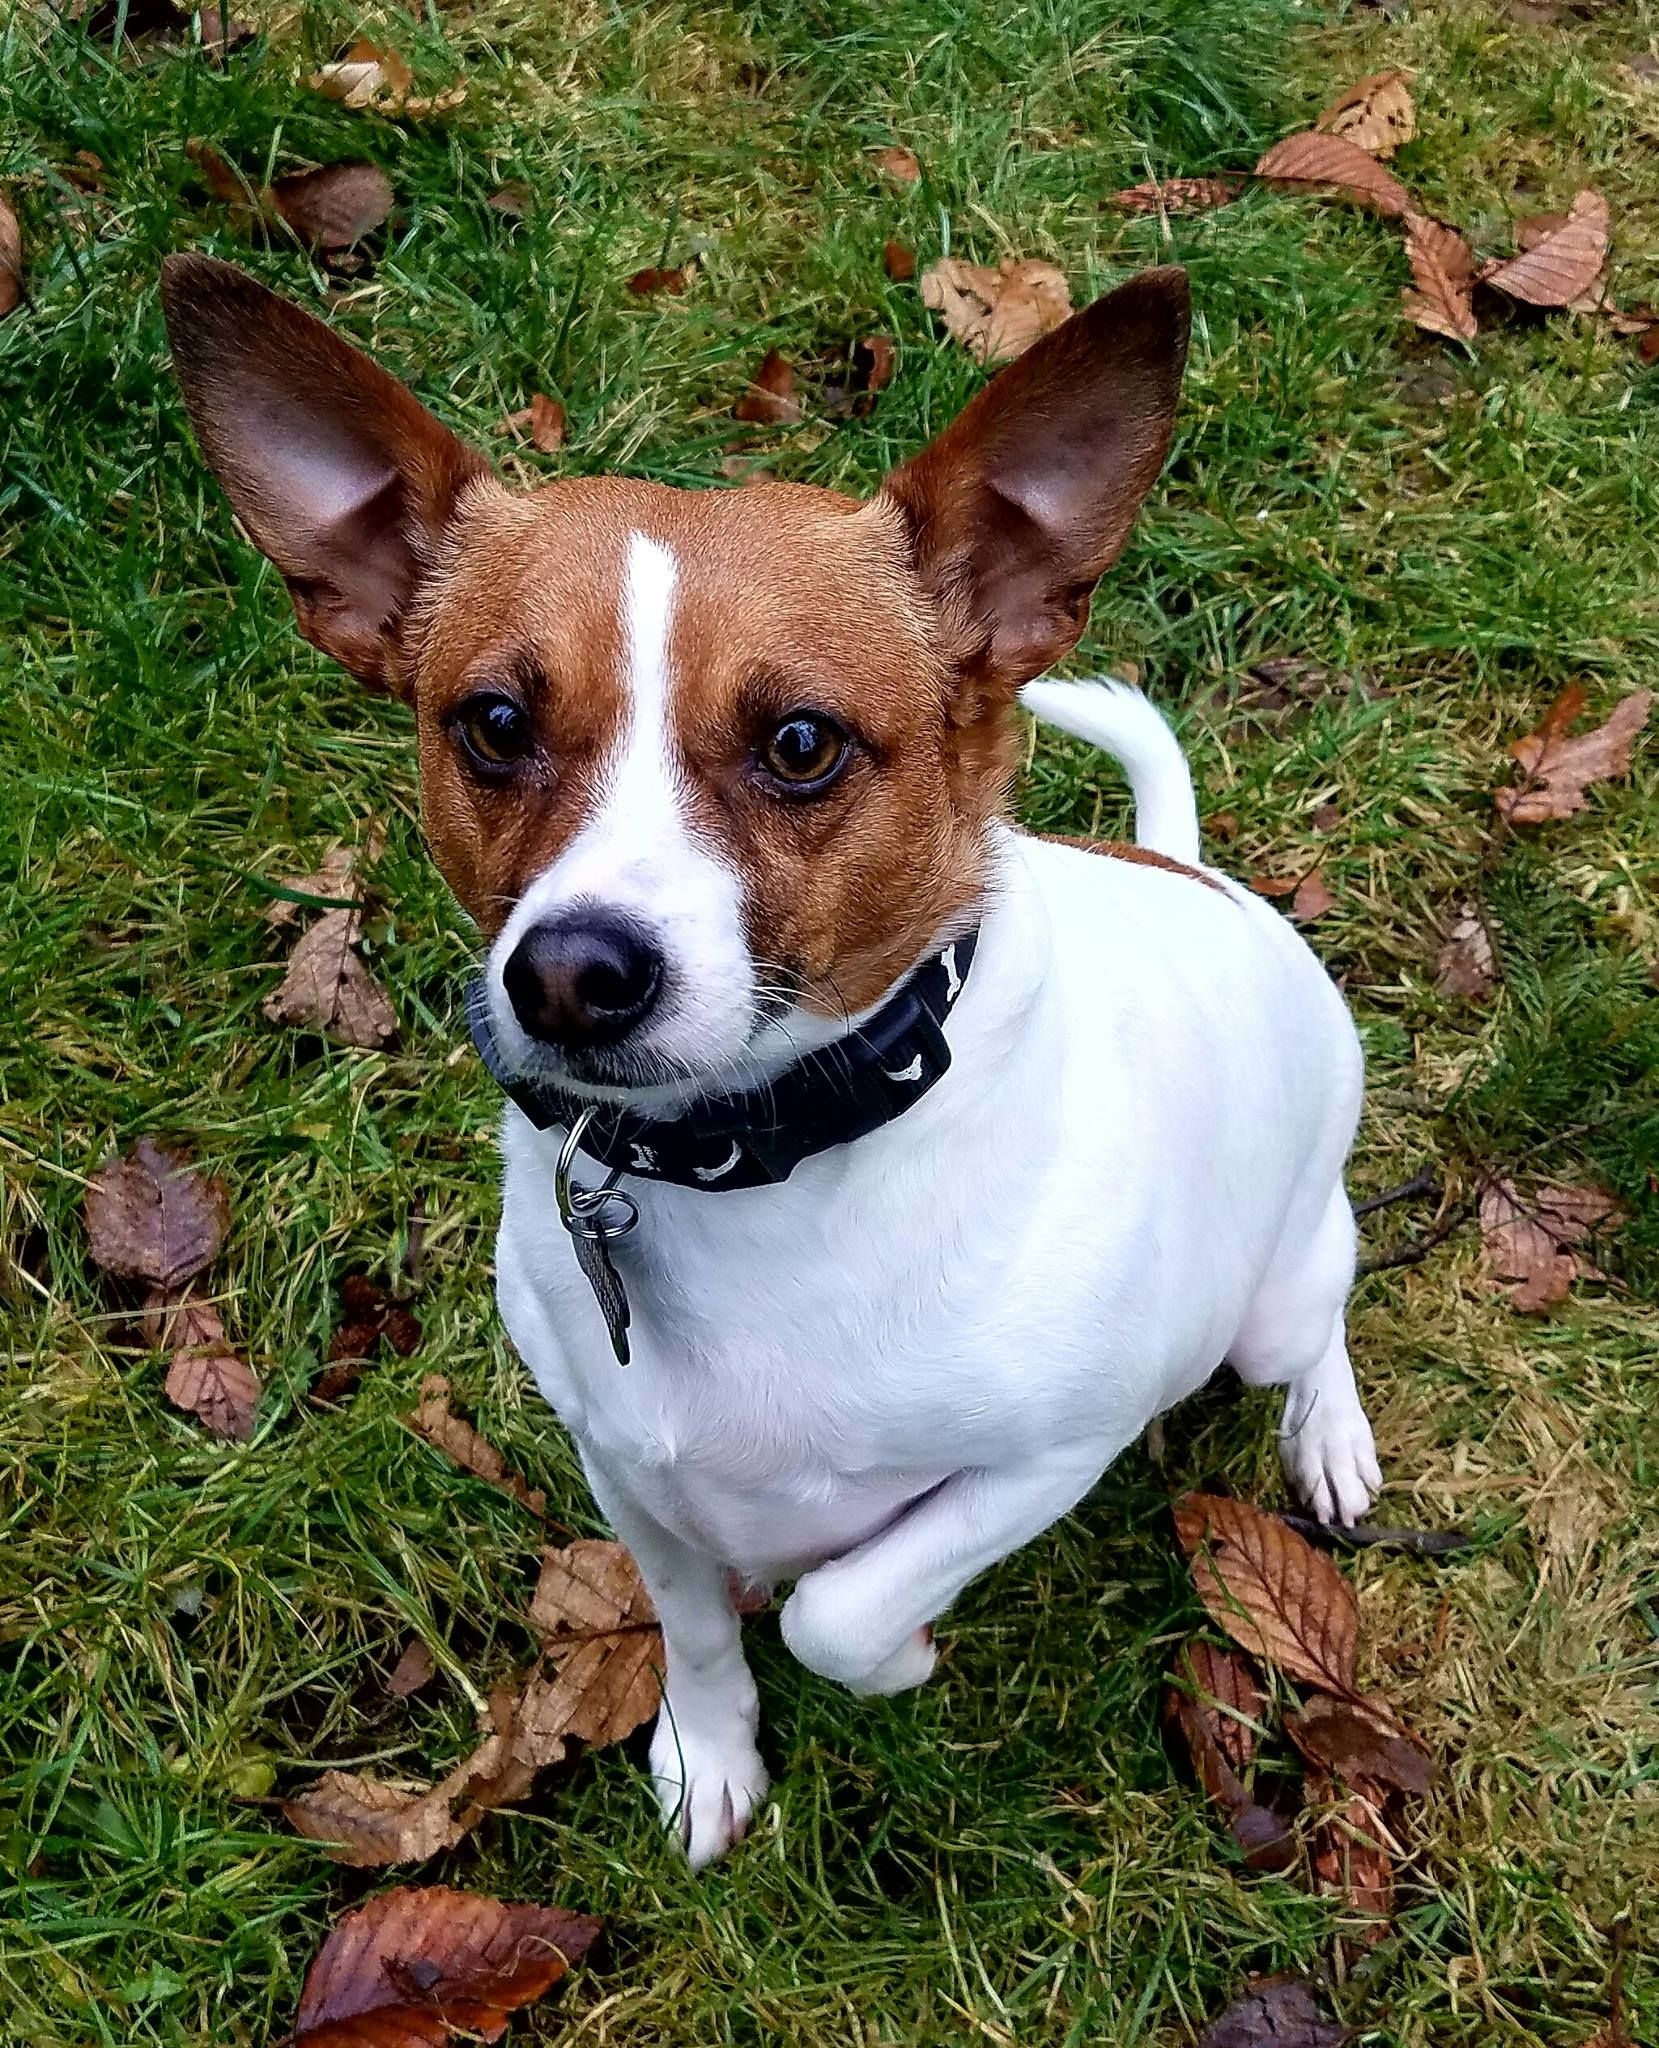 Jack Russell Terrier dog for Adoption in Yakima, WA. ADN